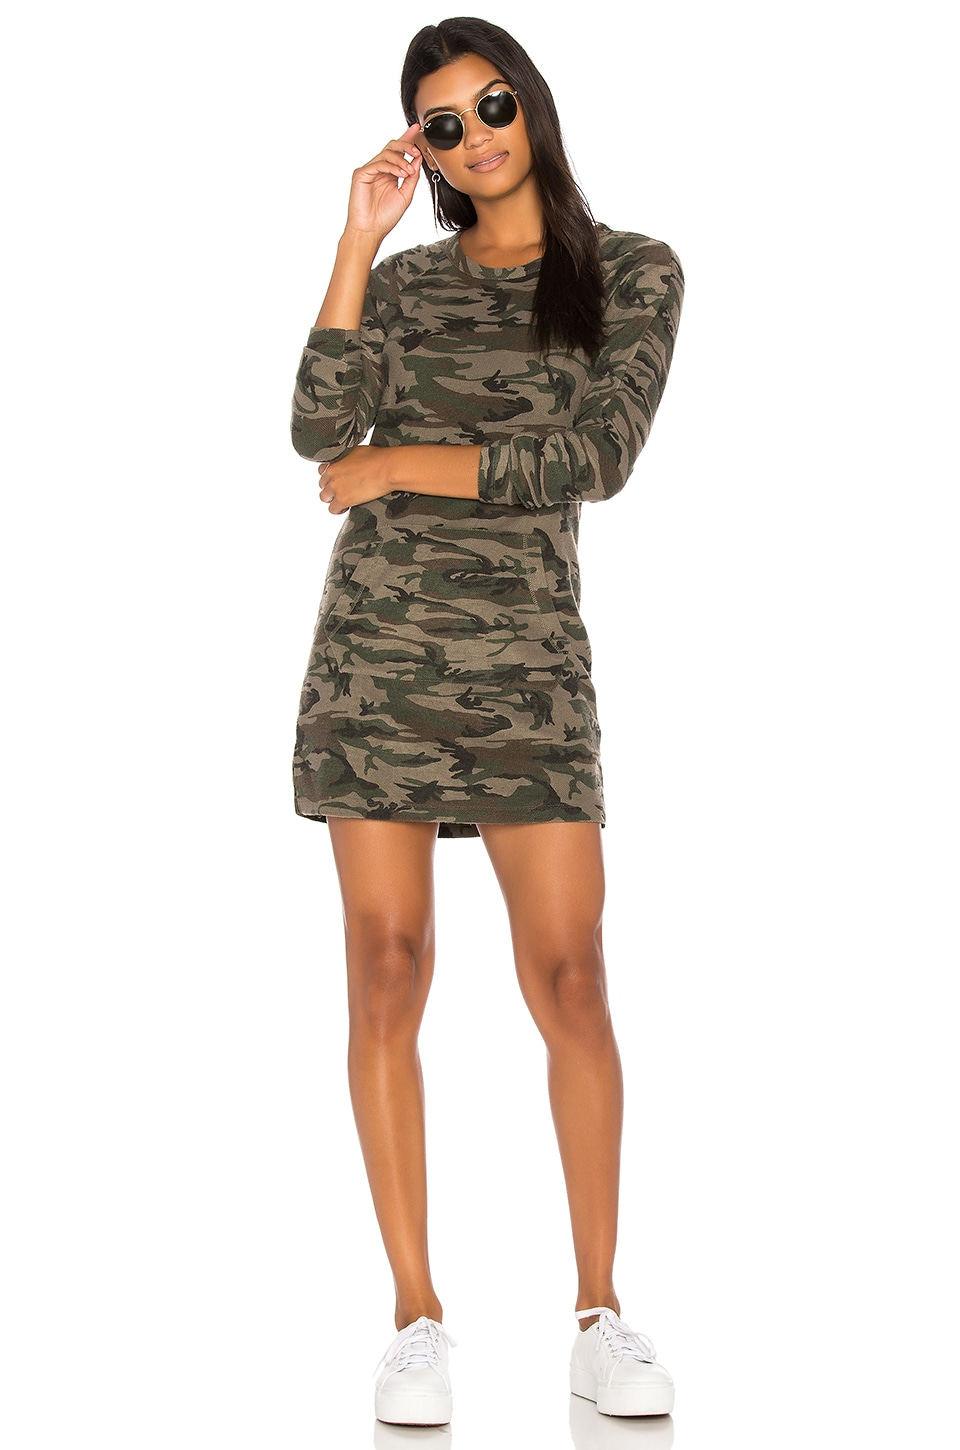 Bobi Textured Camo Sweatshirt Dress in Army